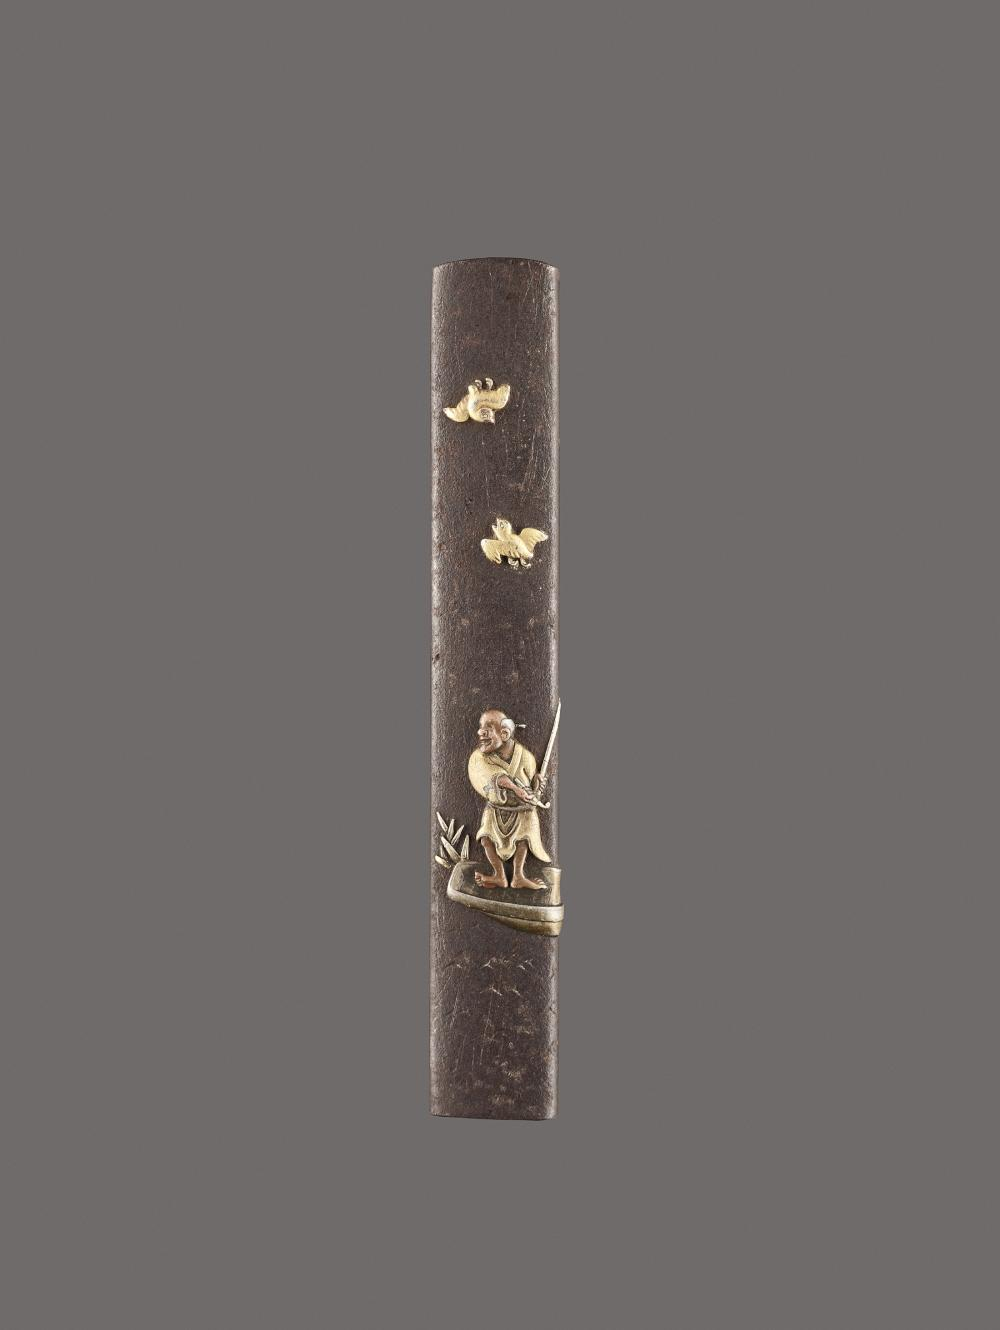 A MIXED METAL KOZUKA HANDLE DEPICTING A FISHERMAN IN A BOAT AND BIRDS